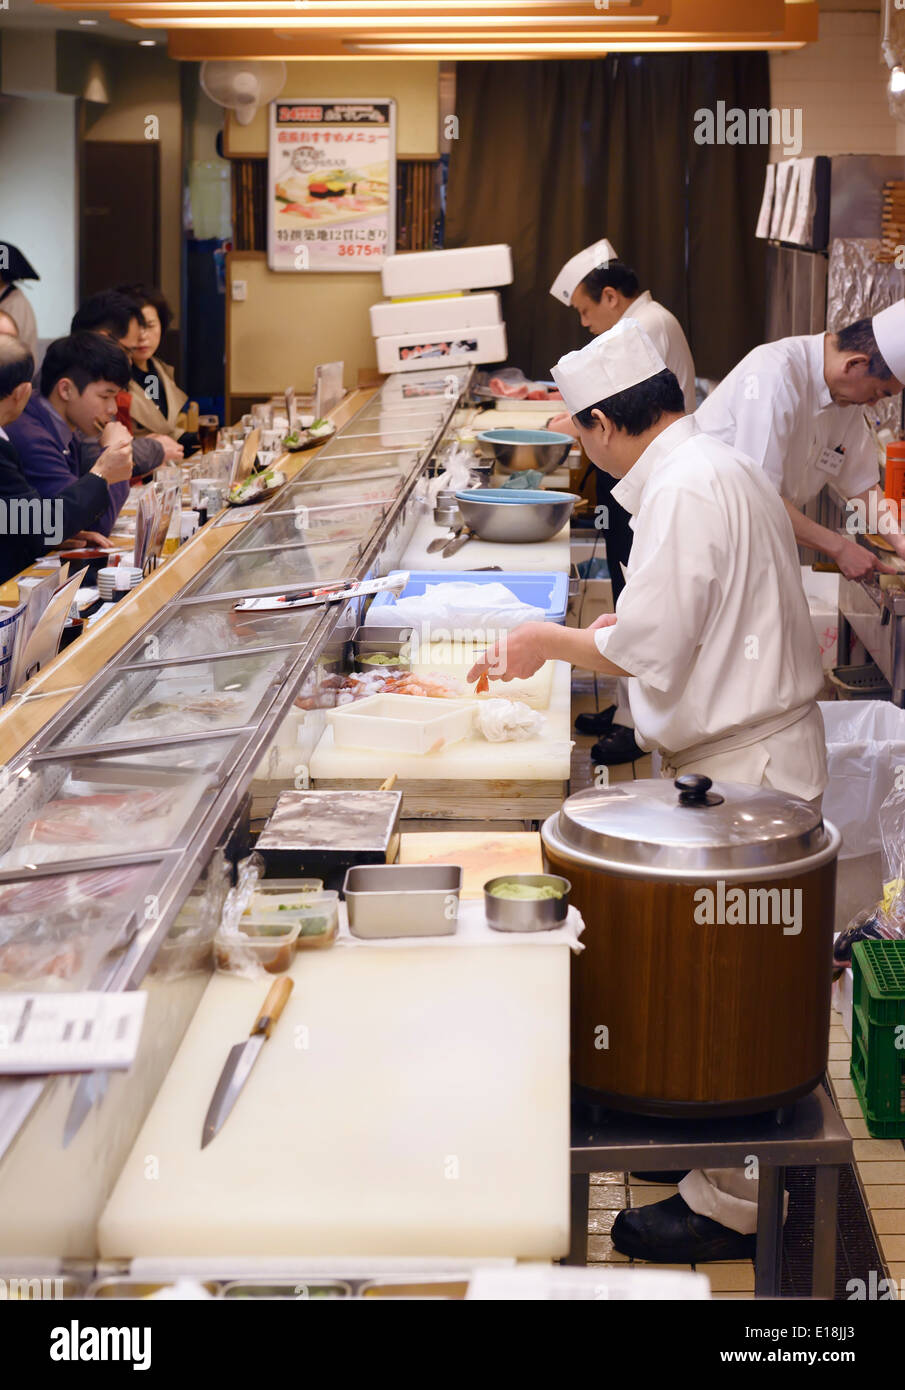 Japanese sushi restaurant cooks in the kitchen. Itamae. Tokyo, Japan. - Stock Image